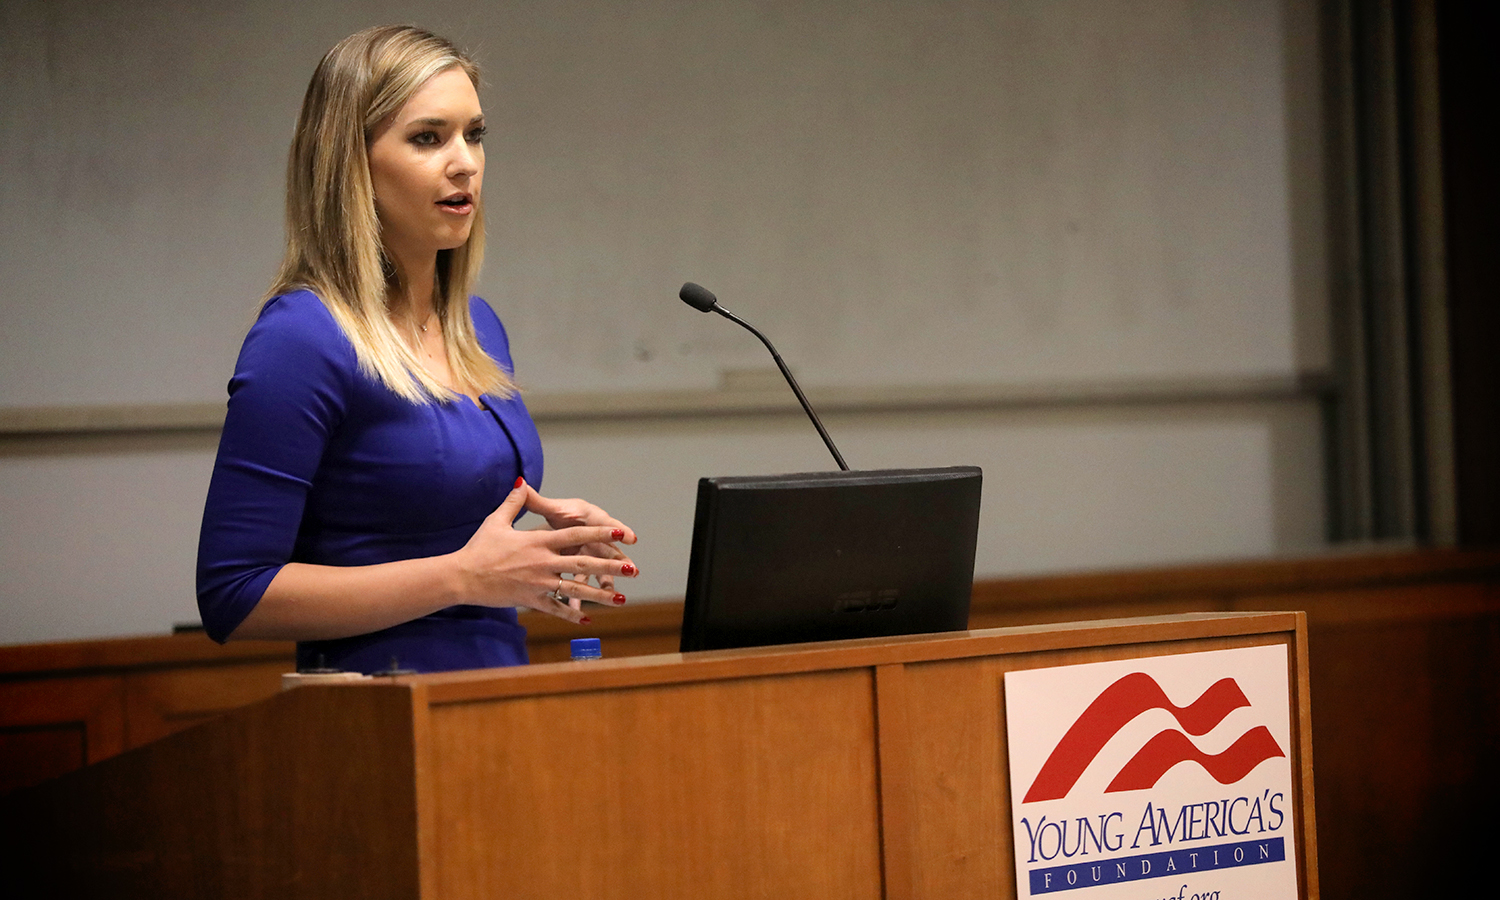 Journalist Katie Pavlich discusses the second amendment with students in the Sanford Room of the Warren Hunting Smith Library. The event was hosted by the HWS chapter of the Young Americans for Freedom.